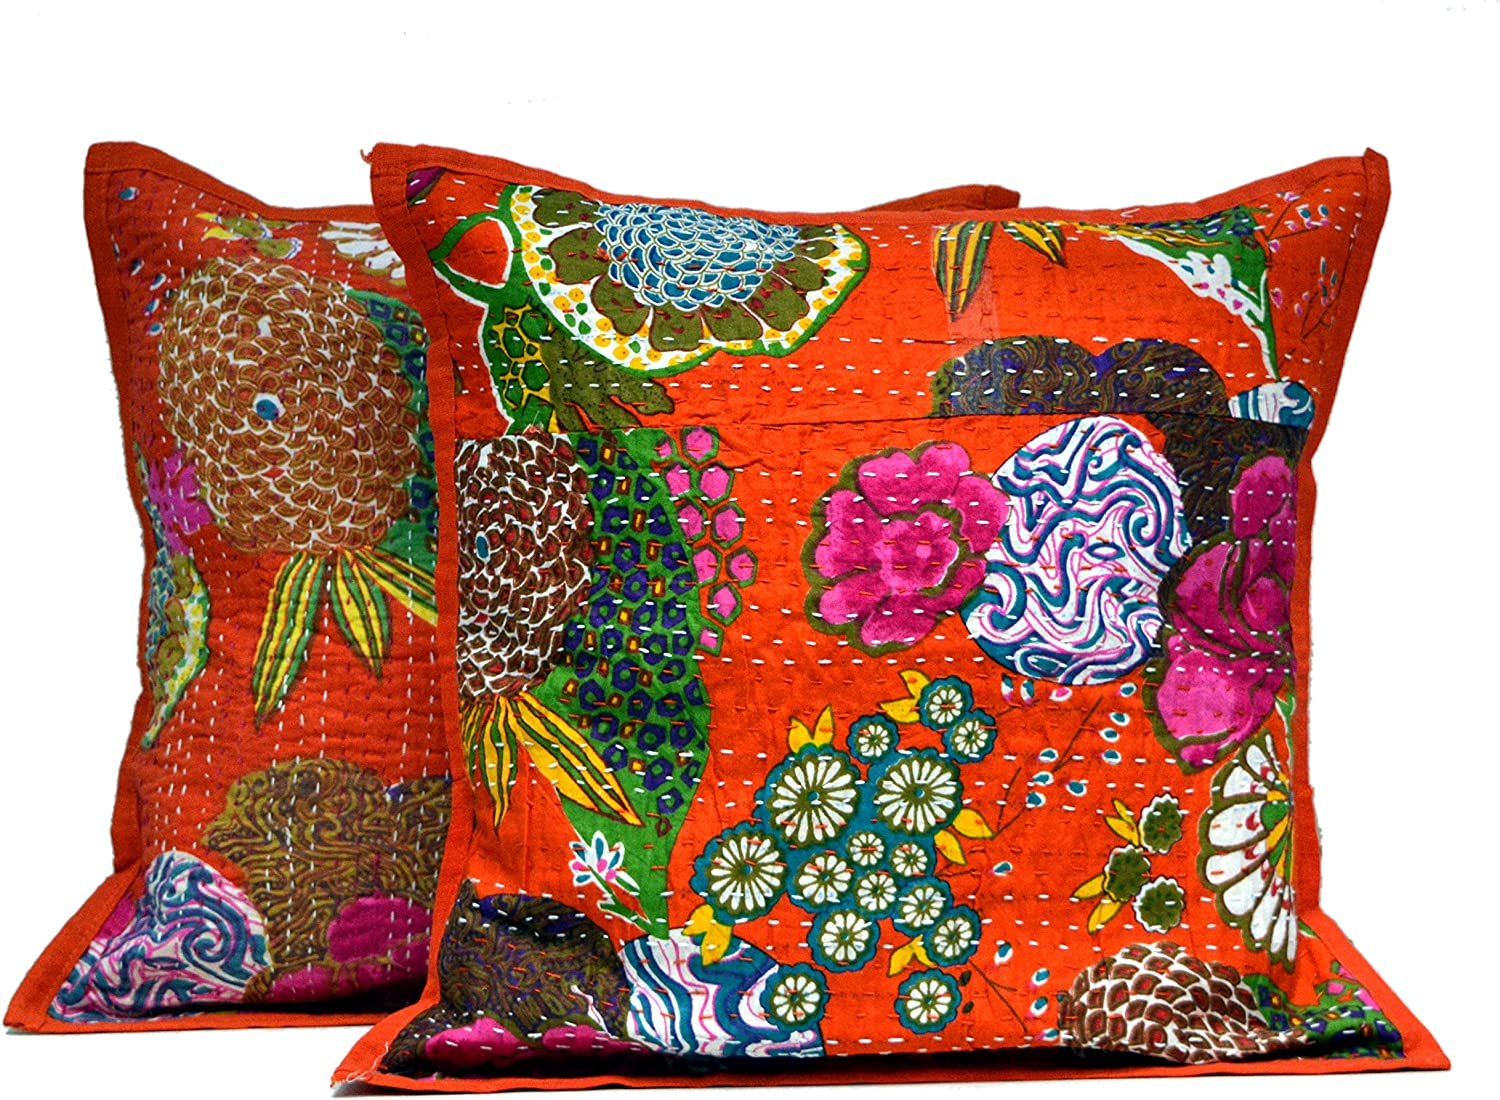 Amazon Com Third Eye Export 2 Orange Indian Kantha Stitch Handmade Floral Decorative Throw Pillow Cases Cushion Covers Home Kitchen